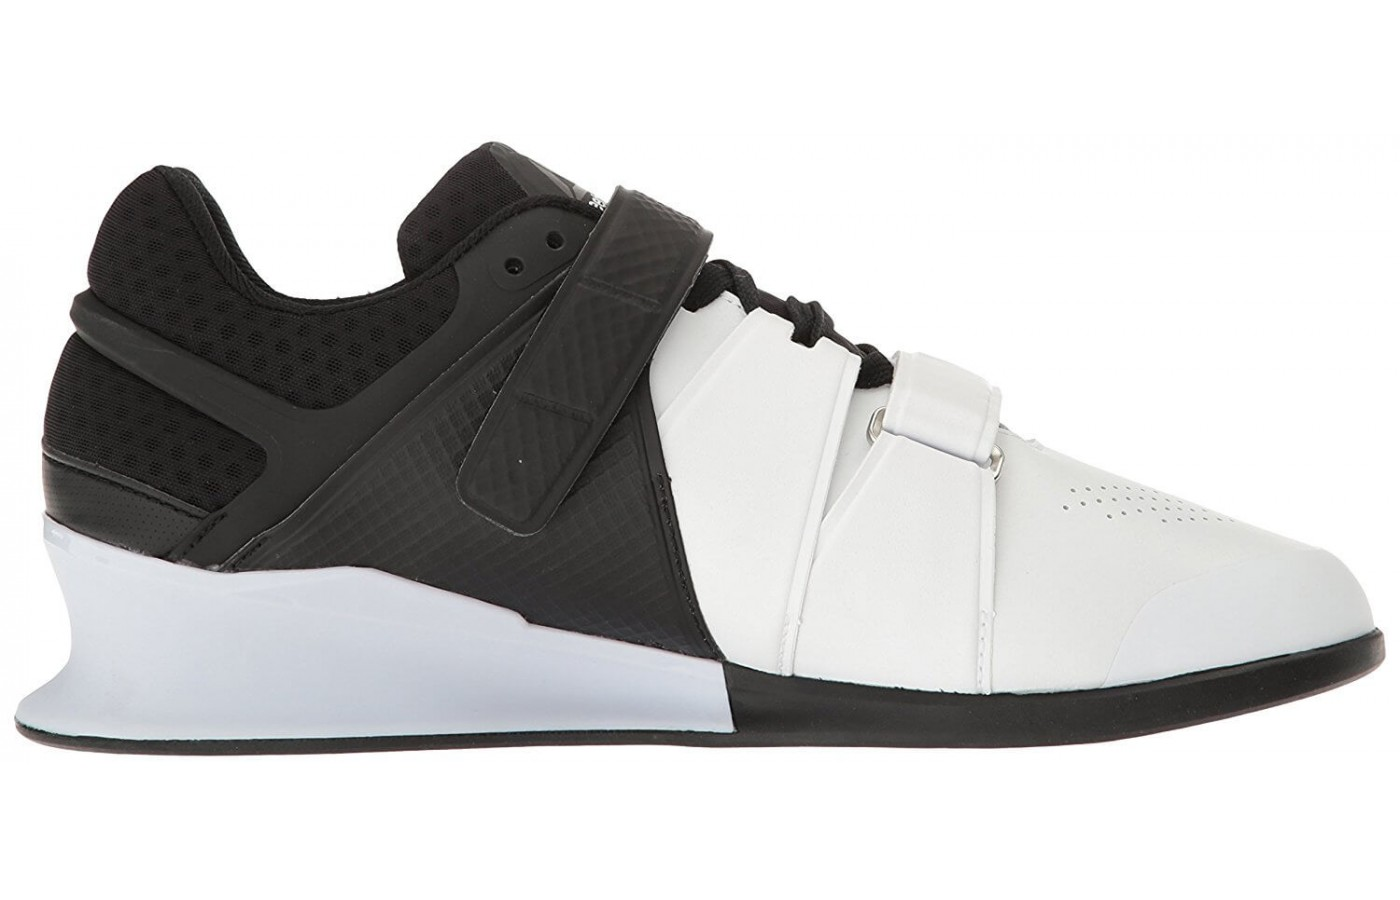 The Reebok Legacy Lifter has a leather upper